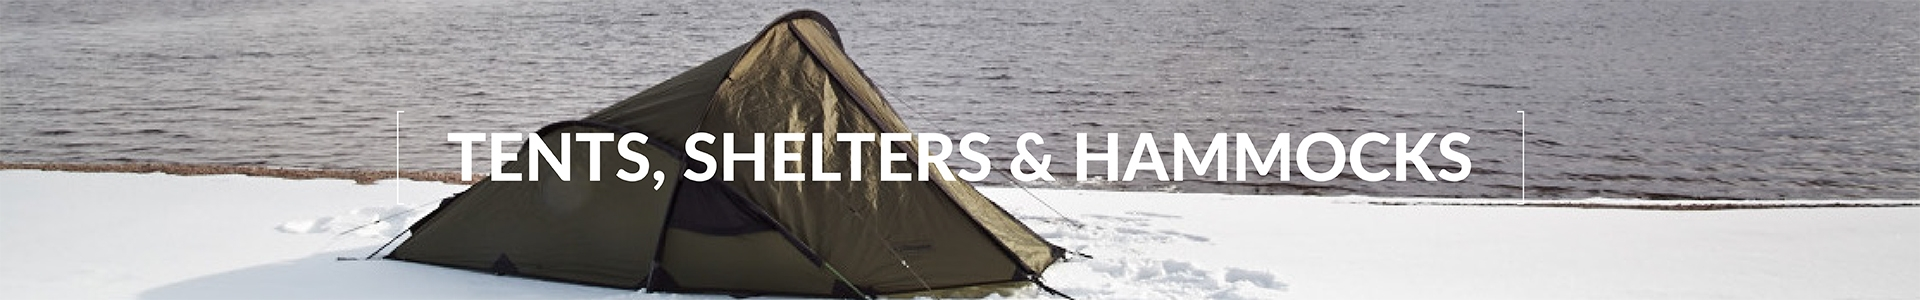 Tents / Shelters